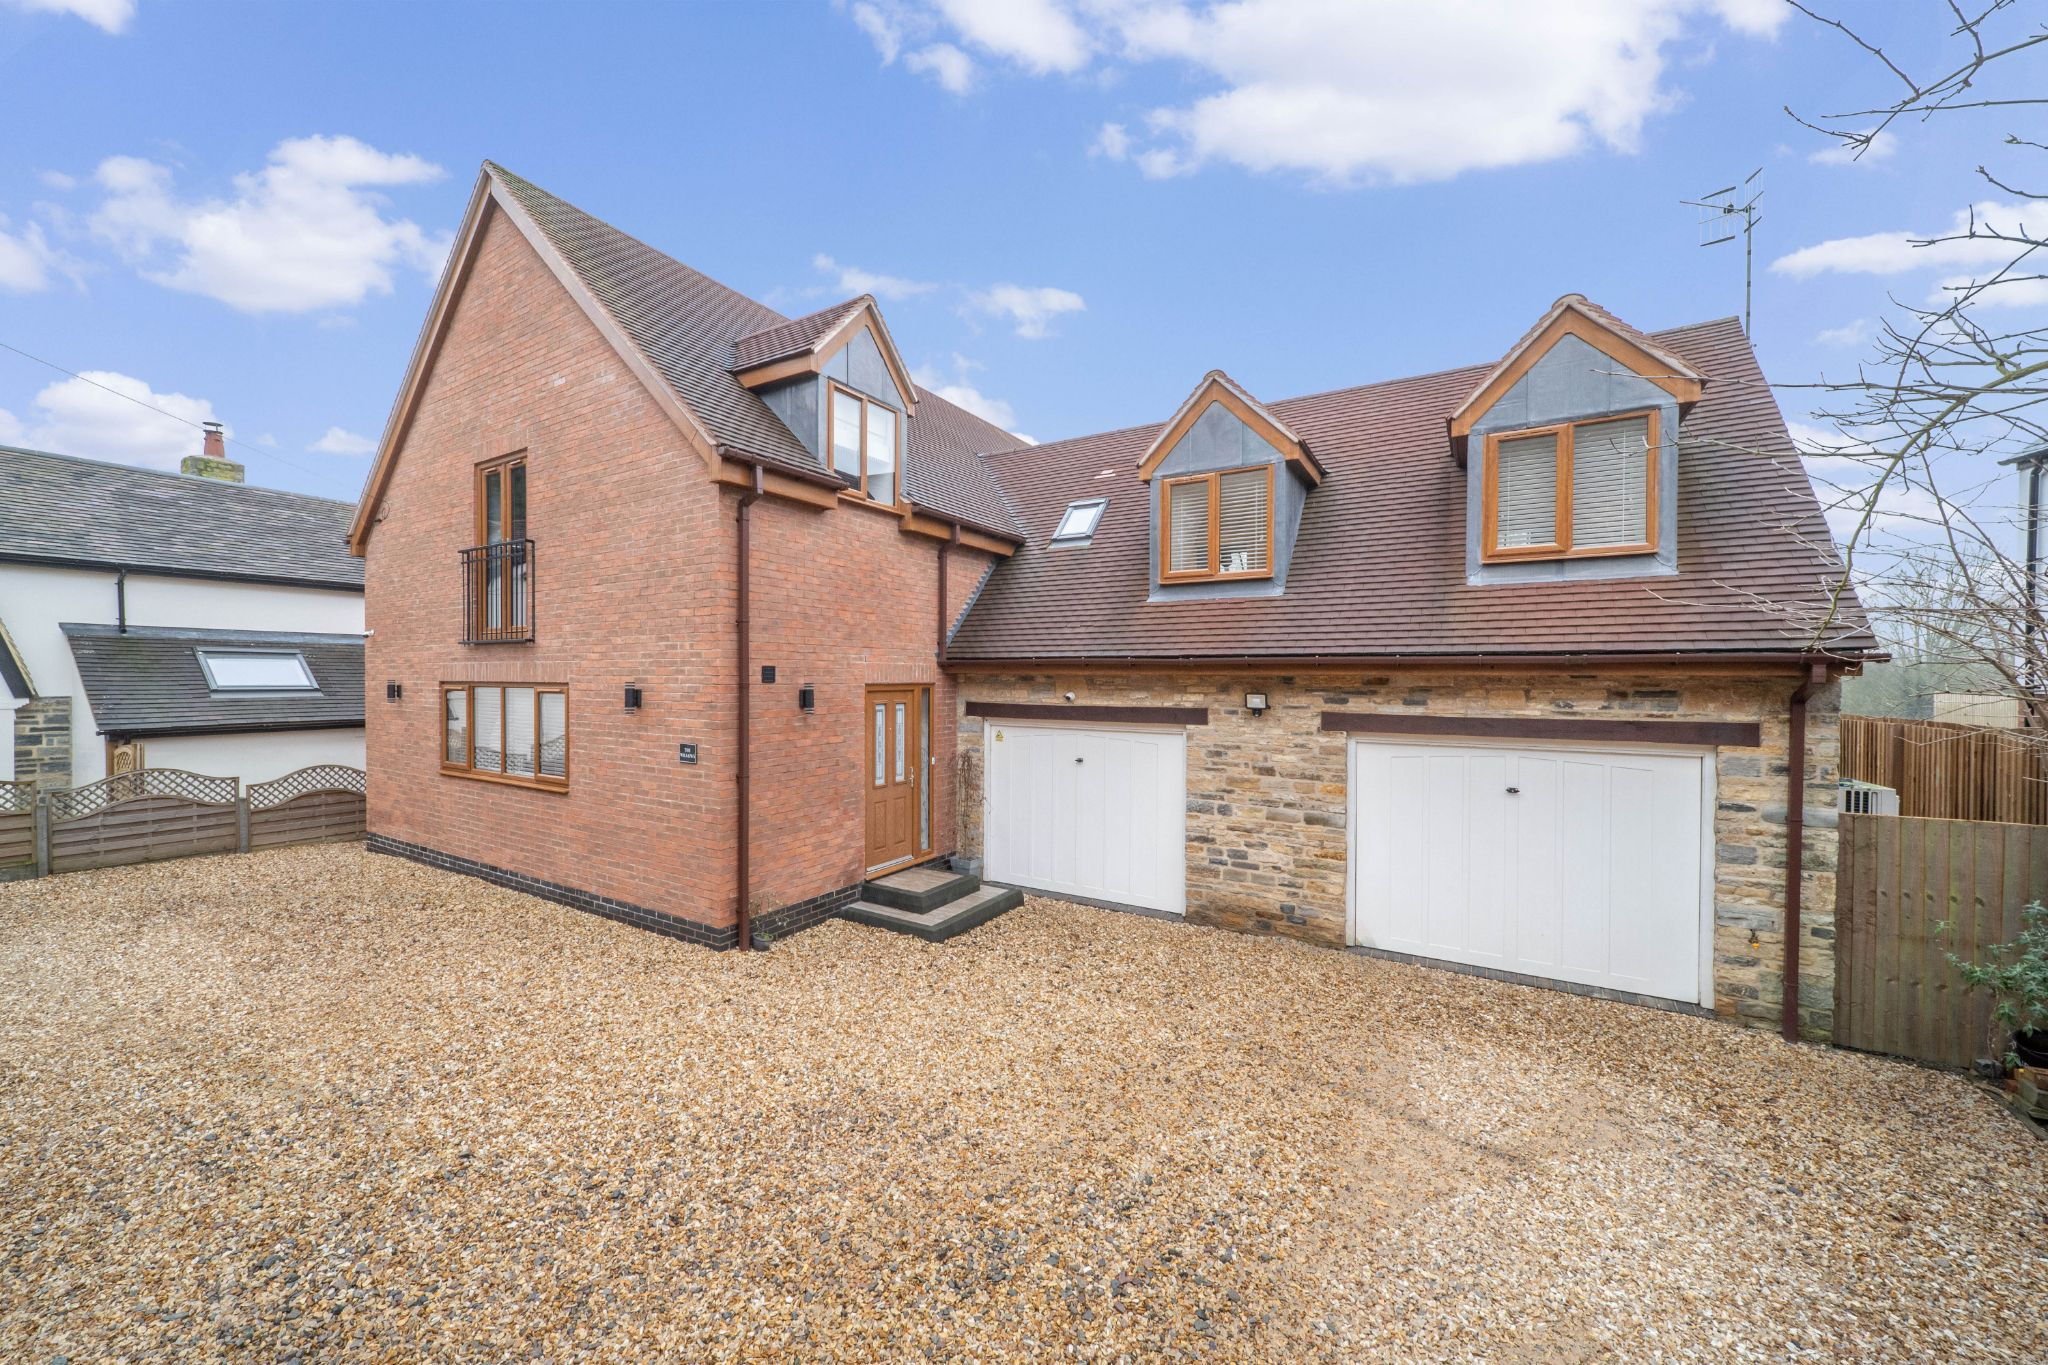 4 bedroom detached house For Sale in Broom, Bidford On Avon, Alcester - Property photograph